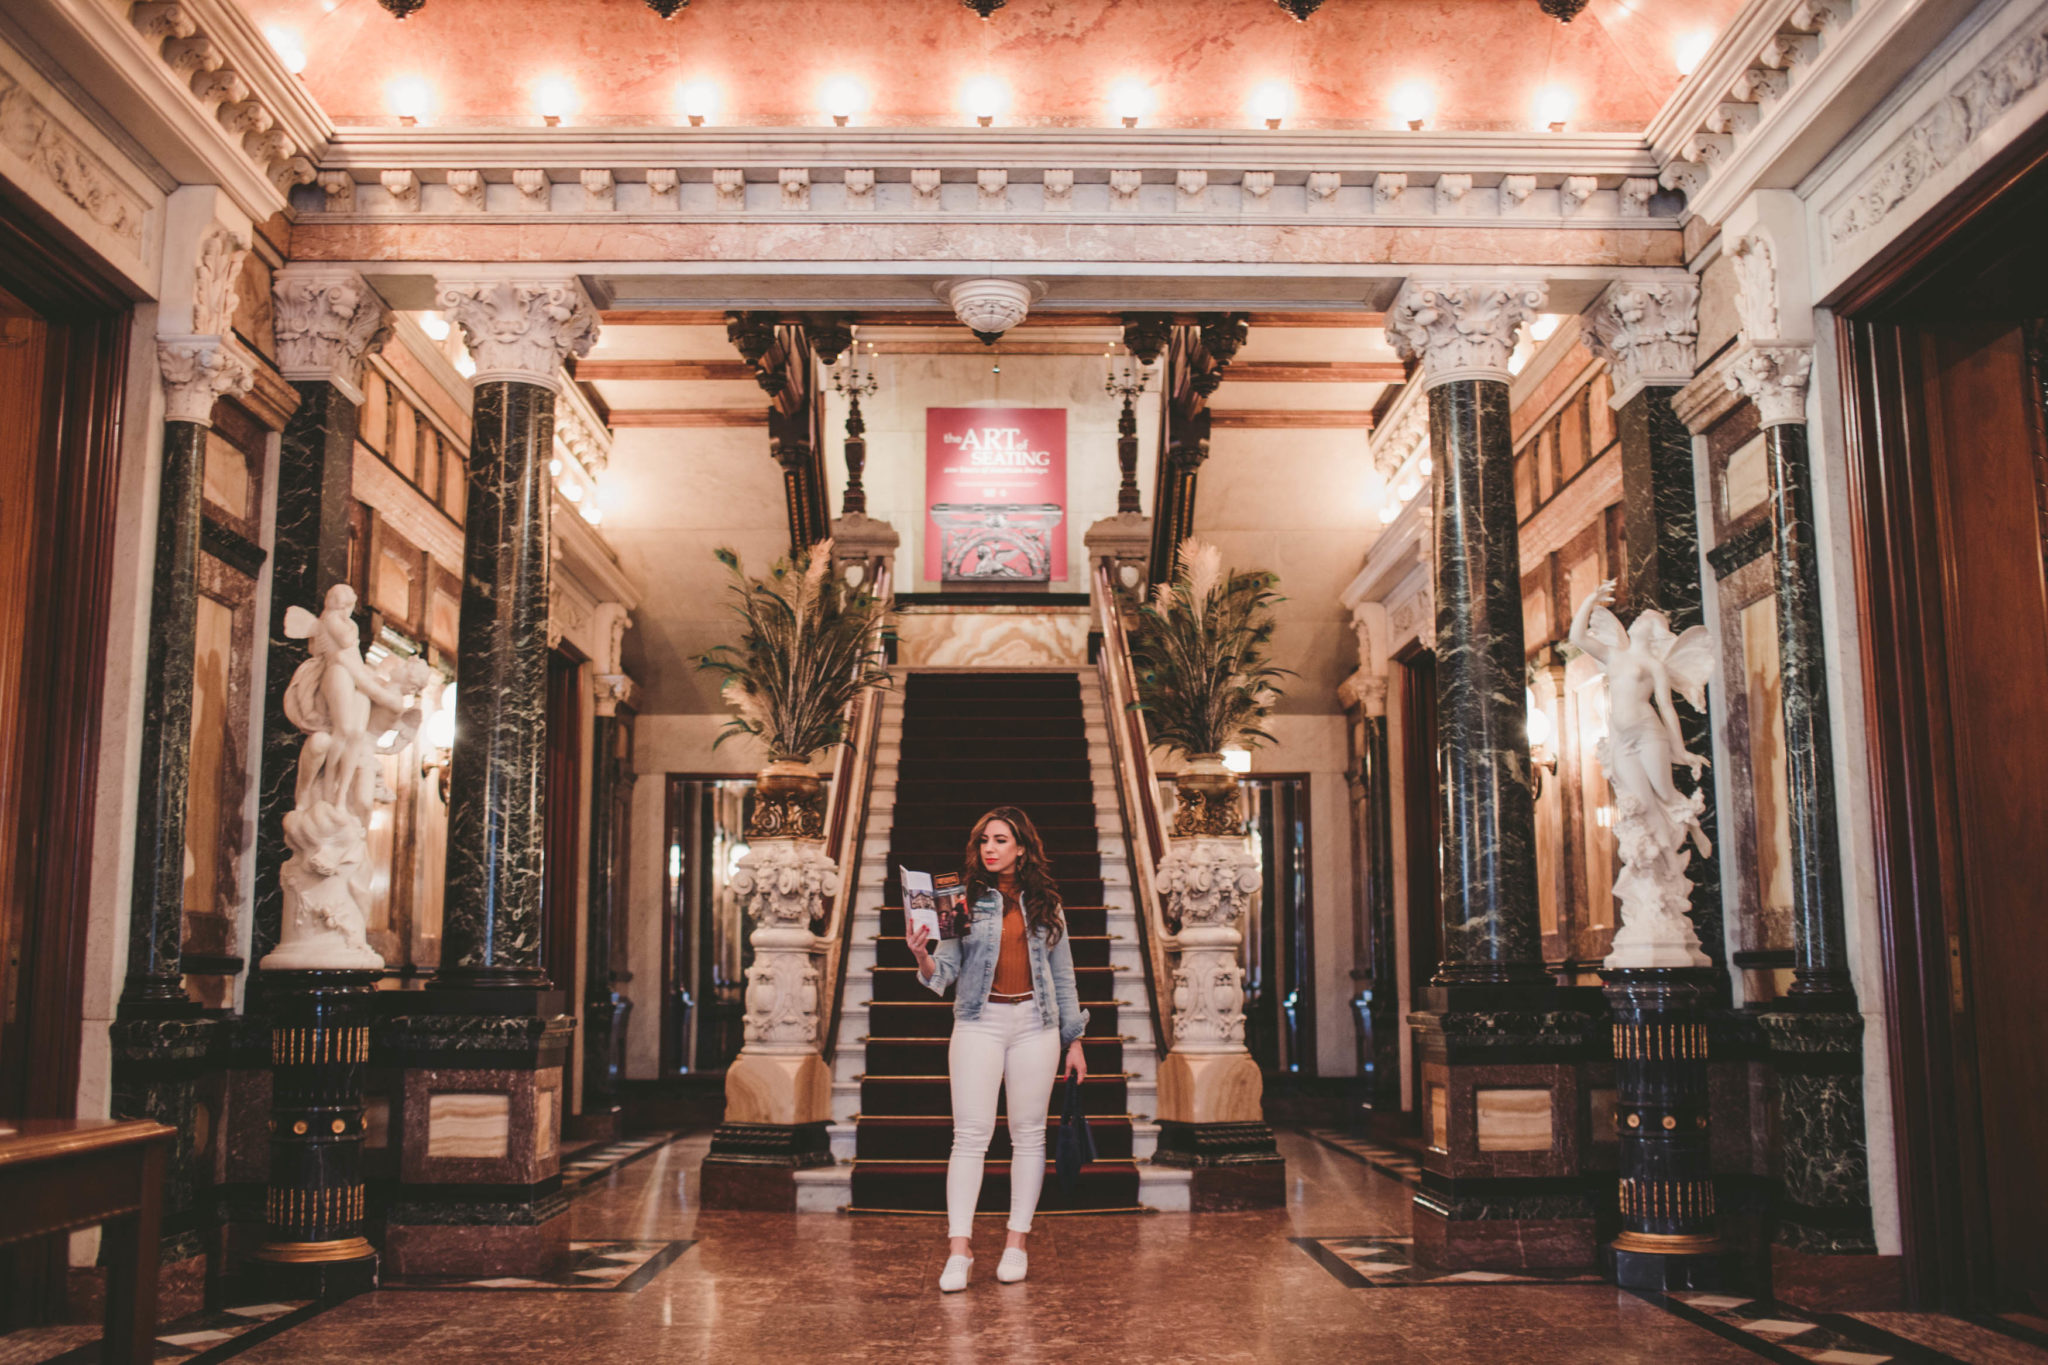 Chicago's Marble Palace & On Mondays We Link Up featured by popular Chicago blogger, Glass of Glam